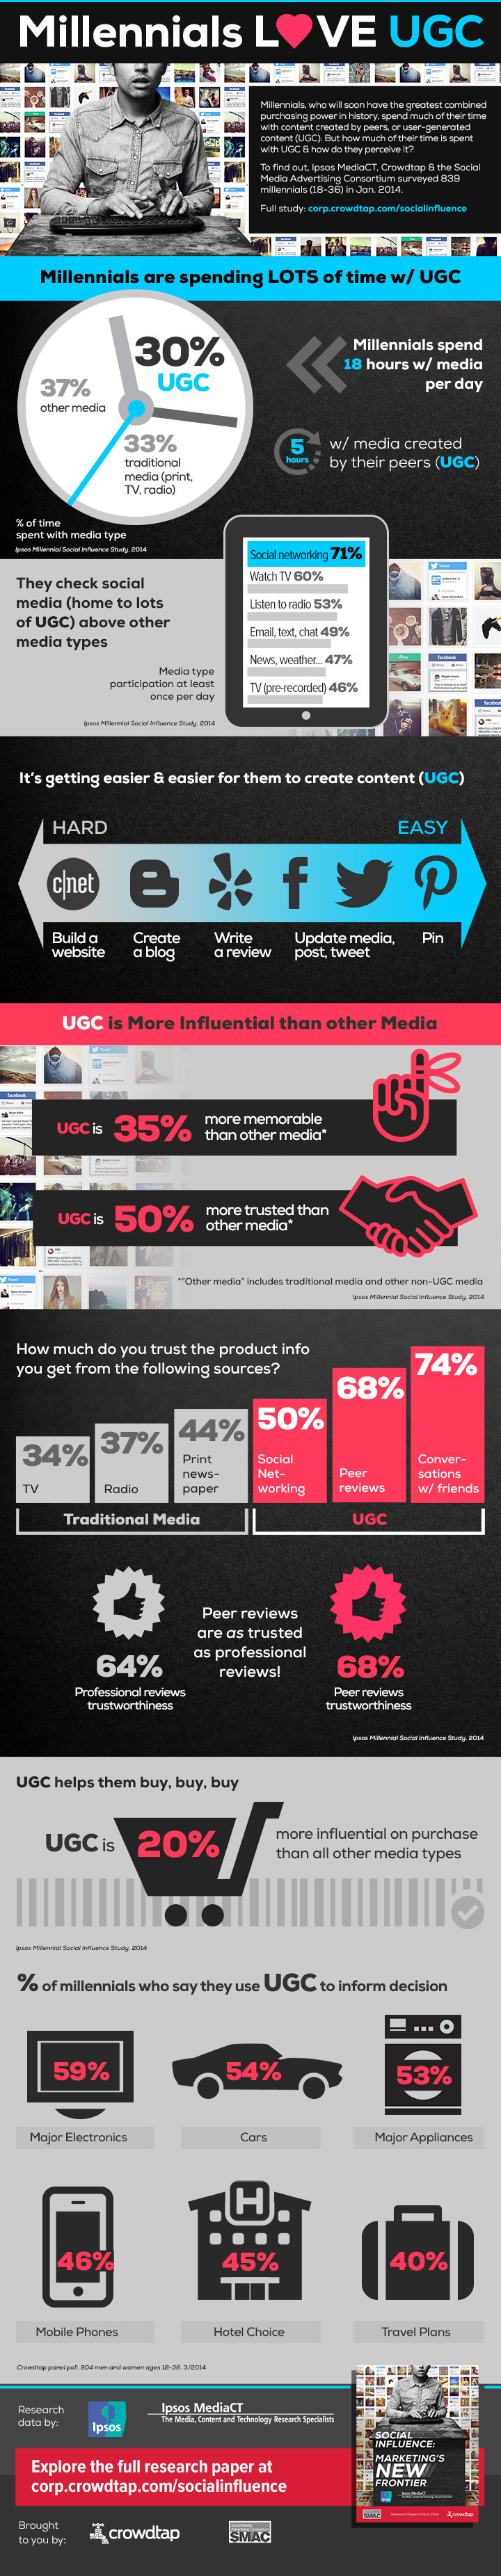 Crowdtap infographic - example of user generated content